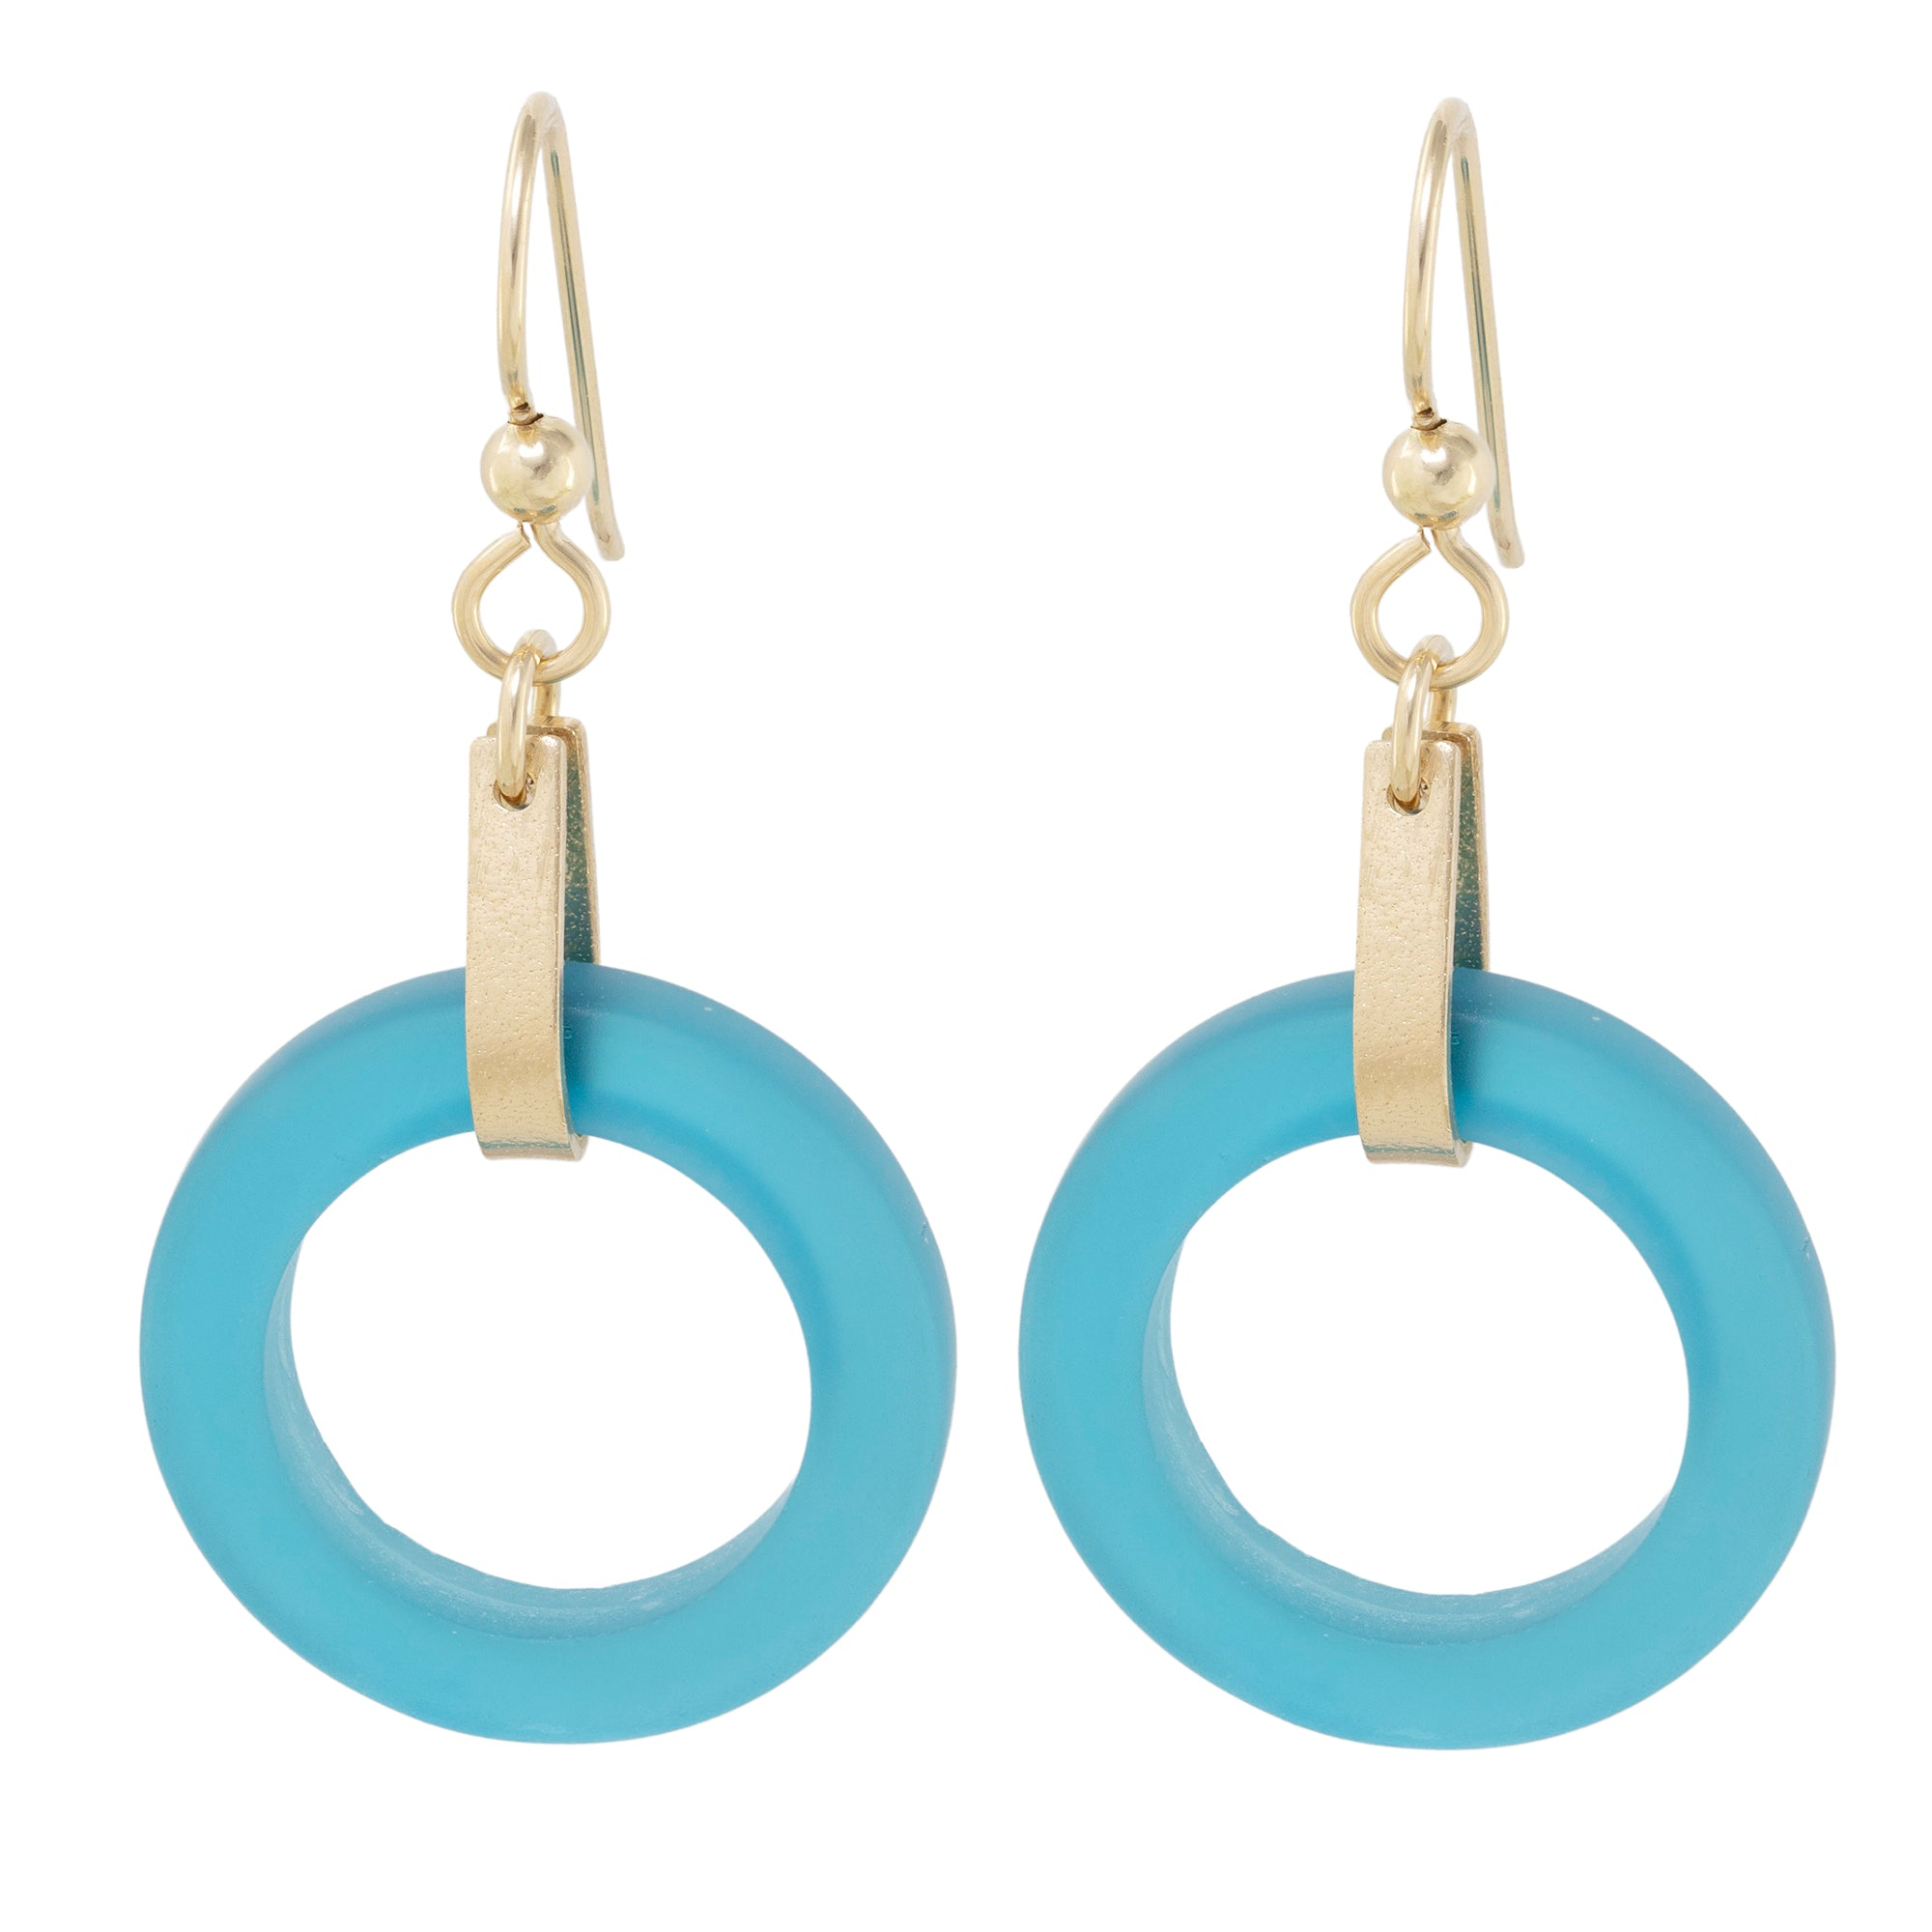 Teal Peacock Blue Round Recycled Glass Open Circle and 14K Gold Fill Strap Style Dangle Earrings